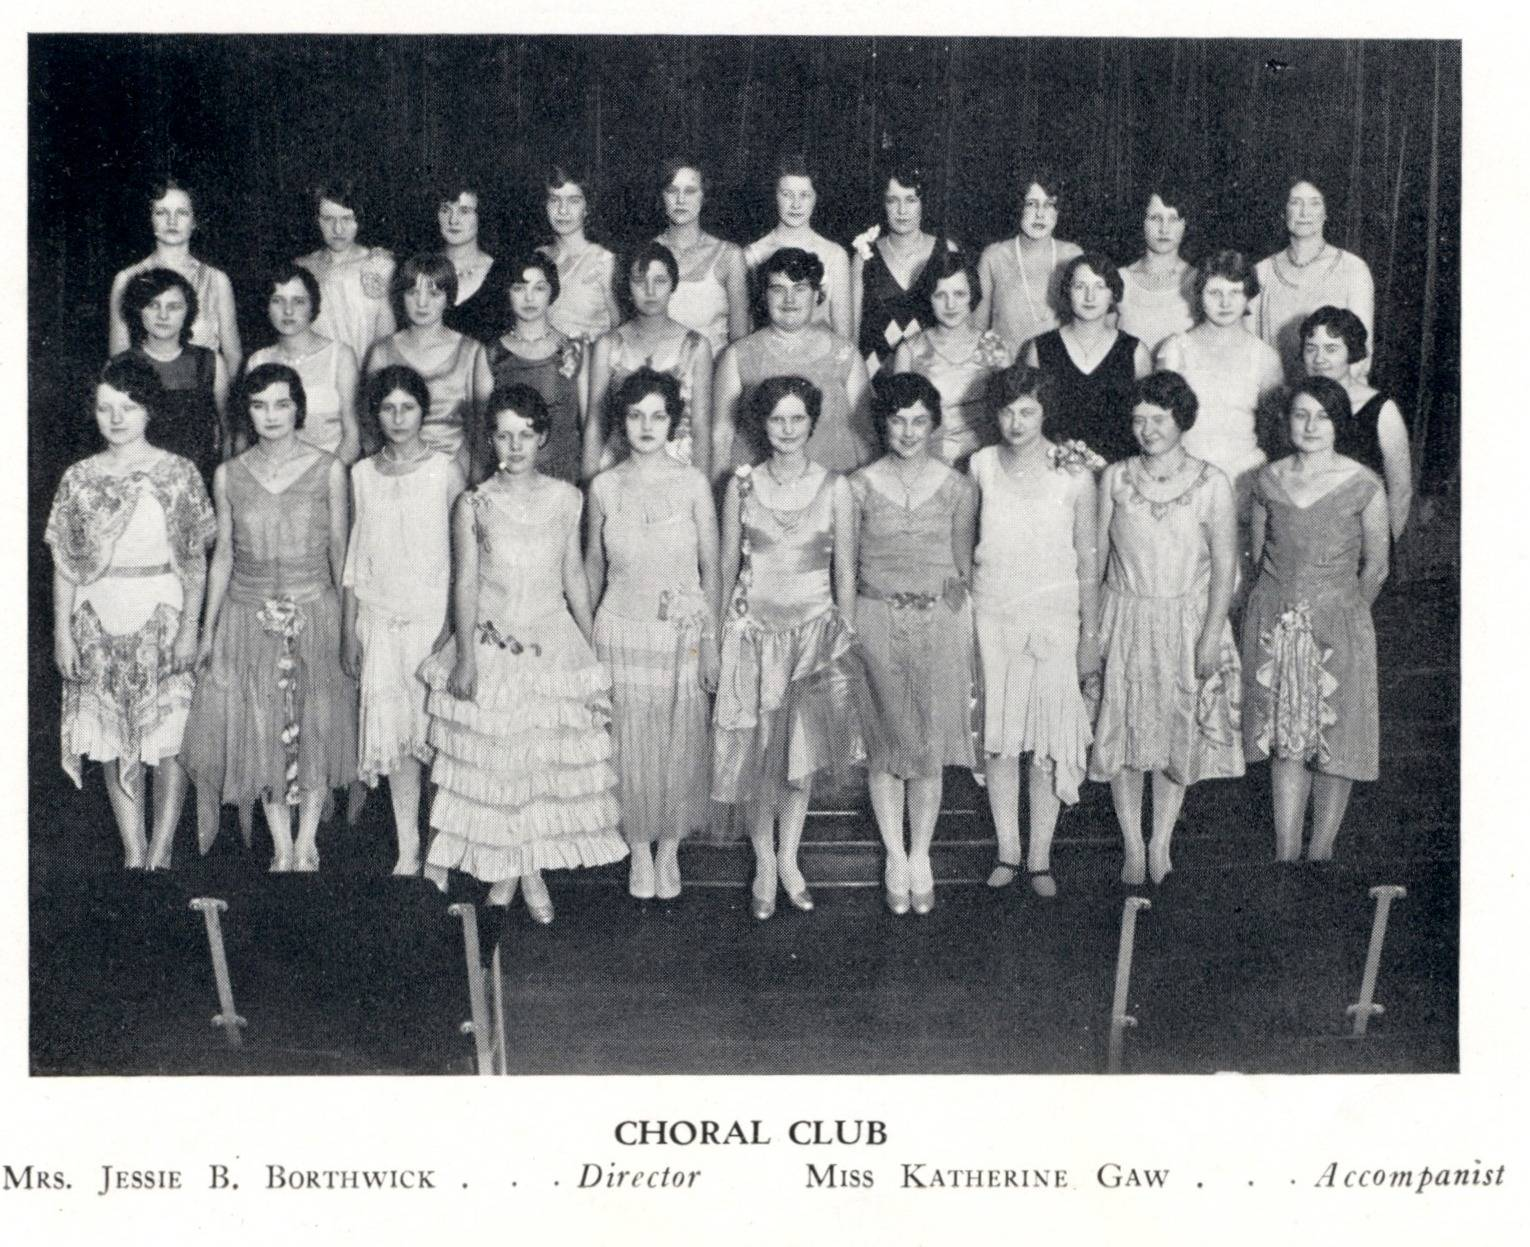 Galloway College Choral Club 1930